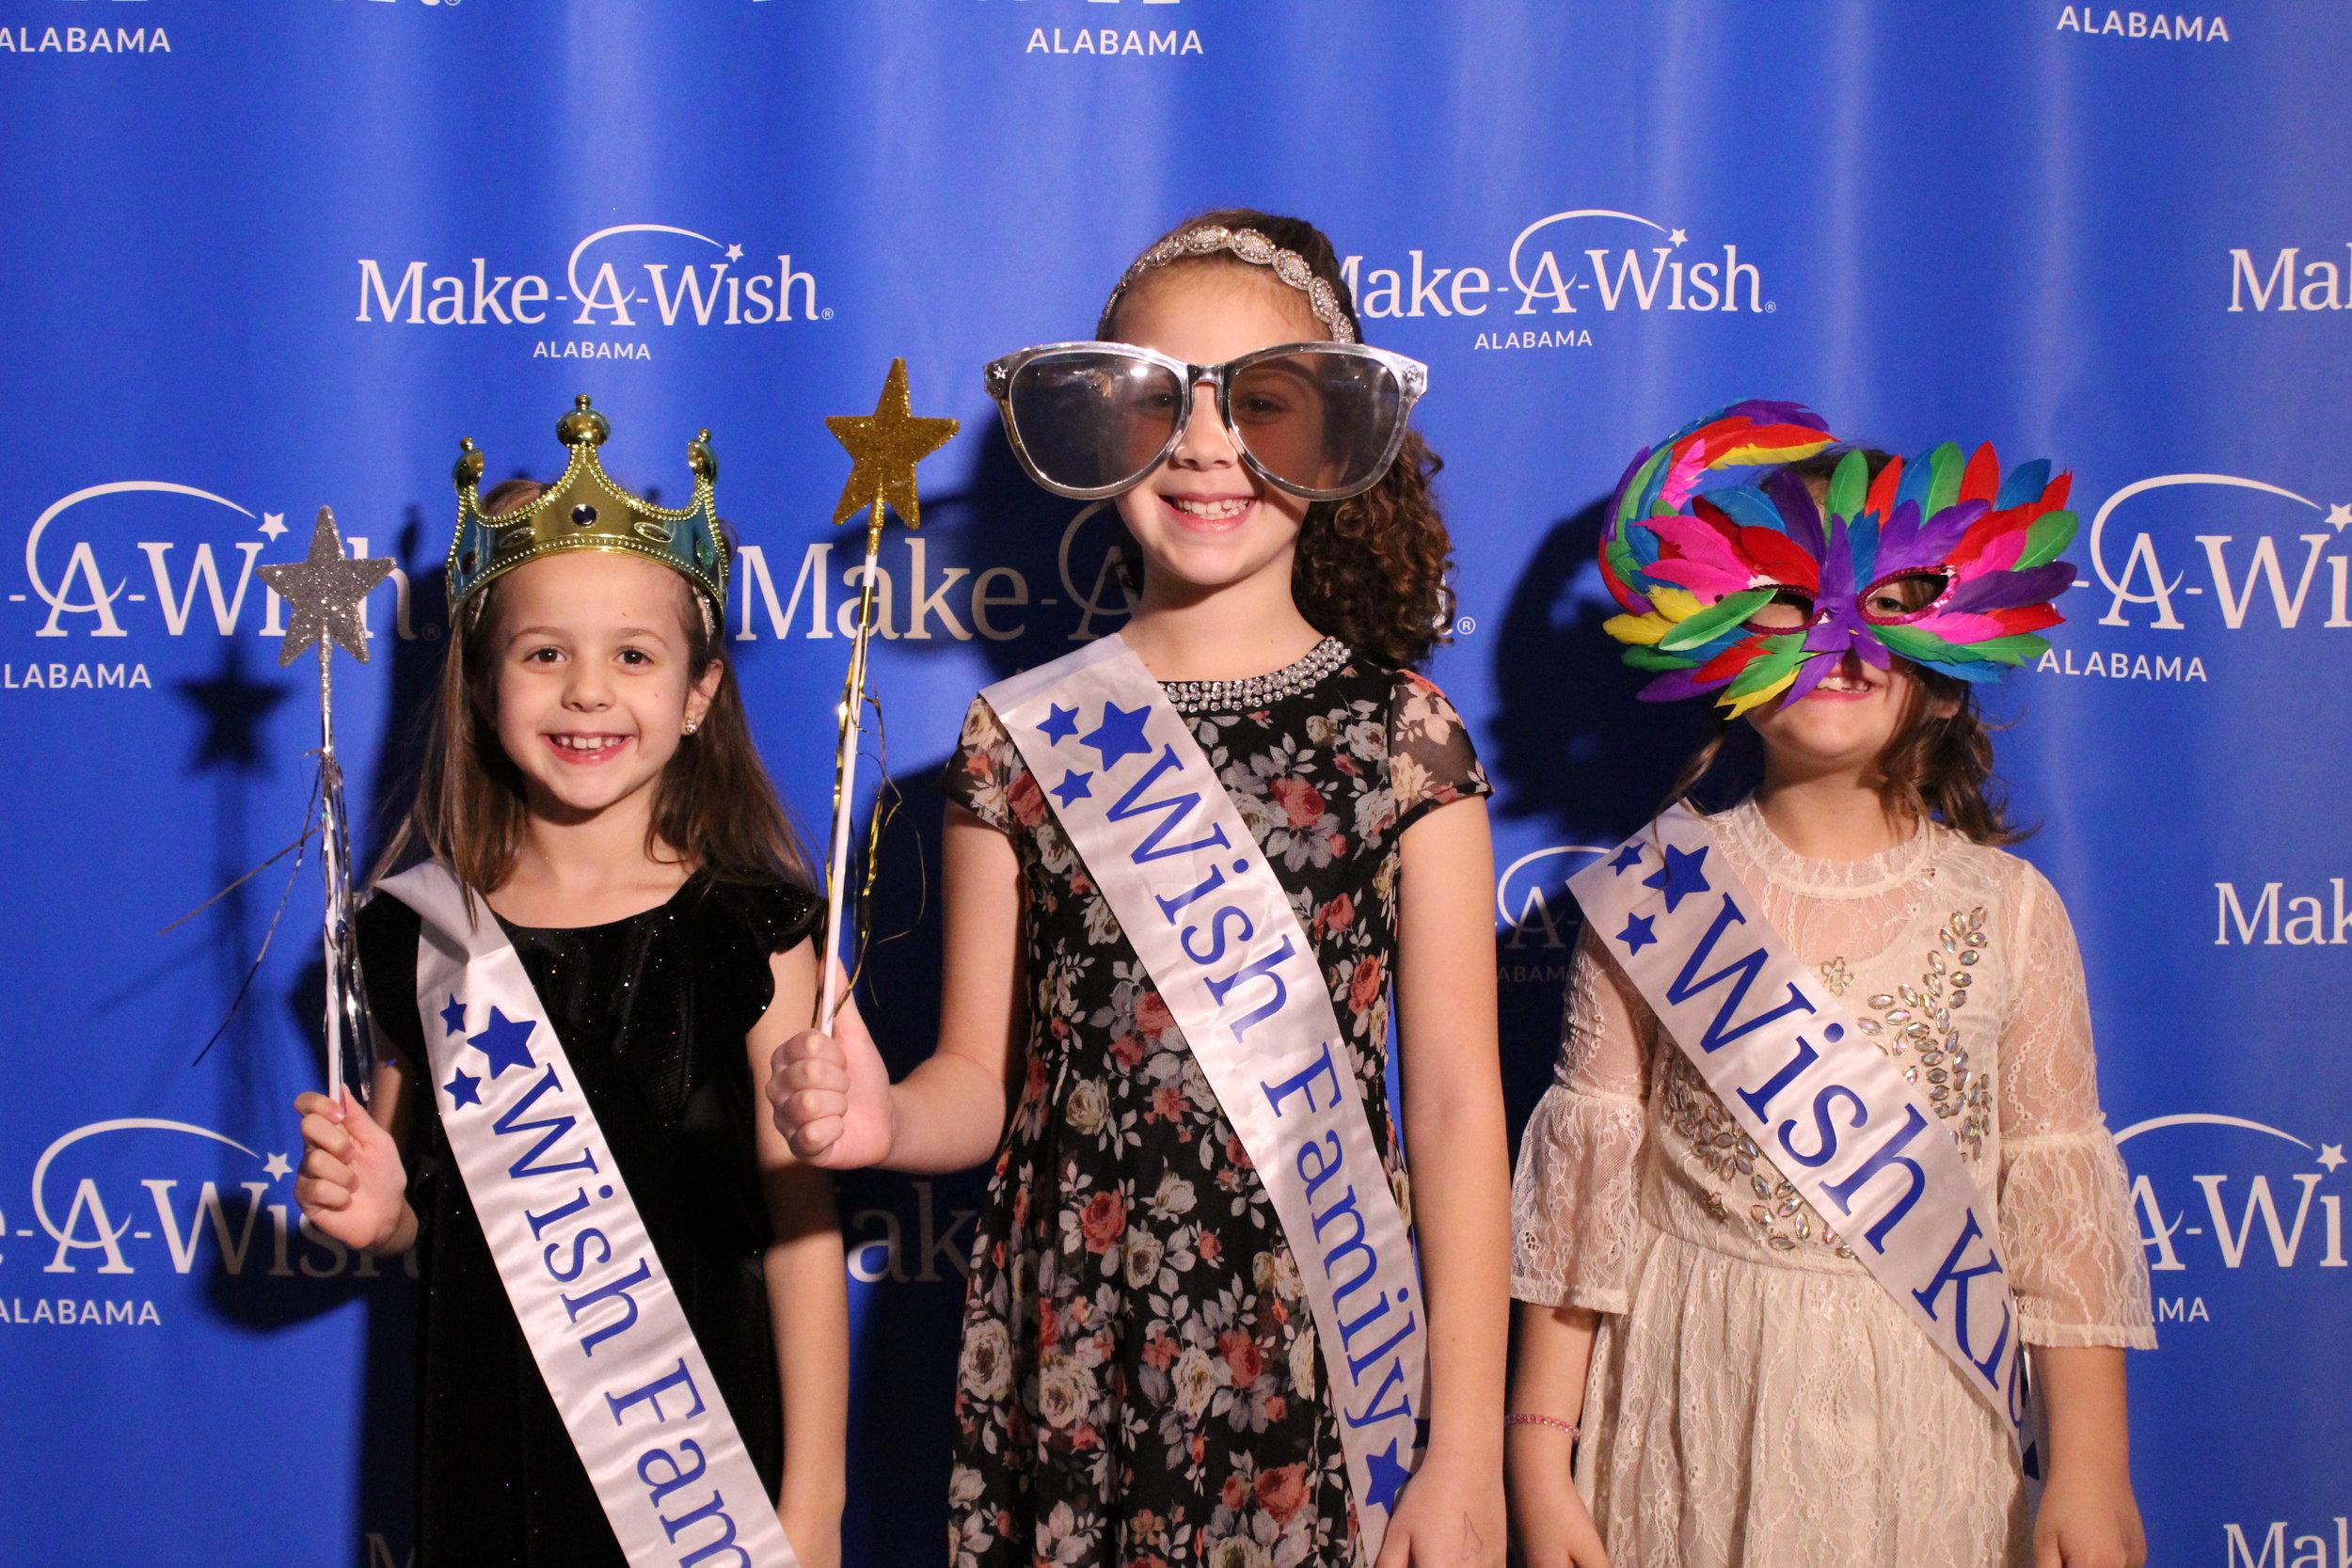 Wish Kid Appearances -